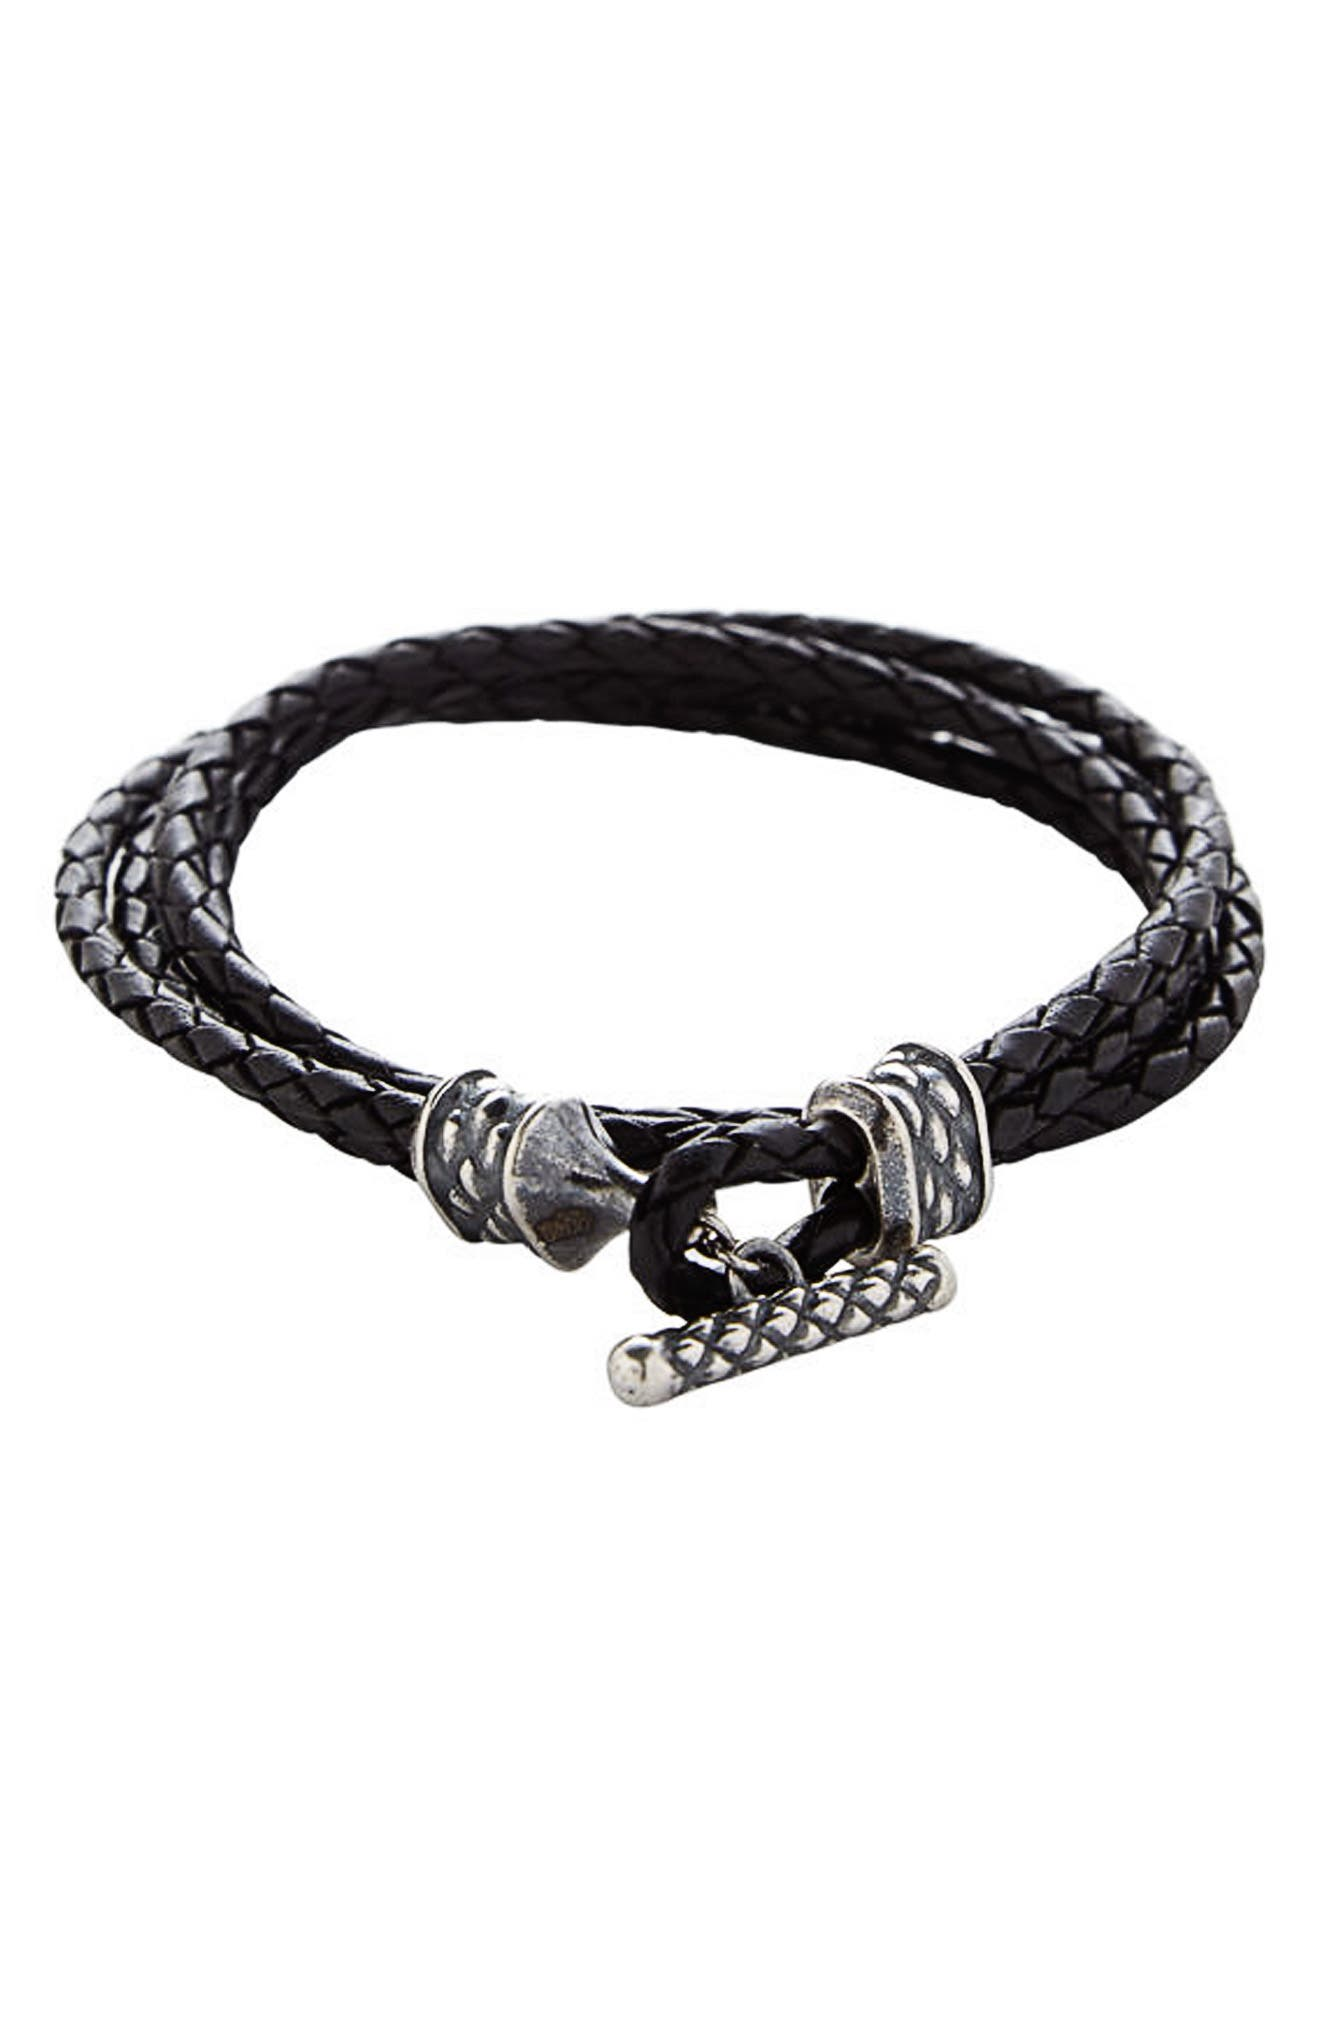 Stealth Leather Wrap Bracelet,                             Main thumbnail 1, color,                             001